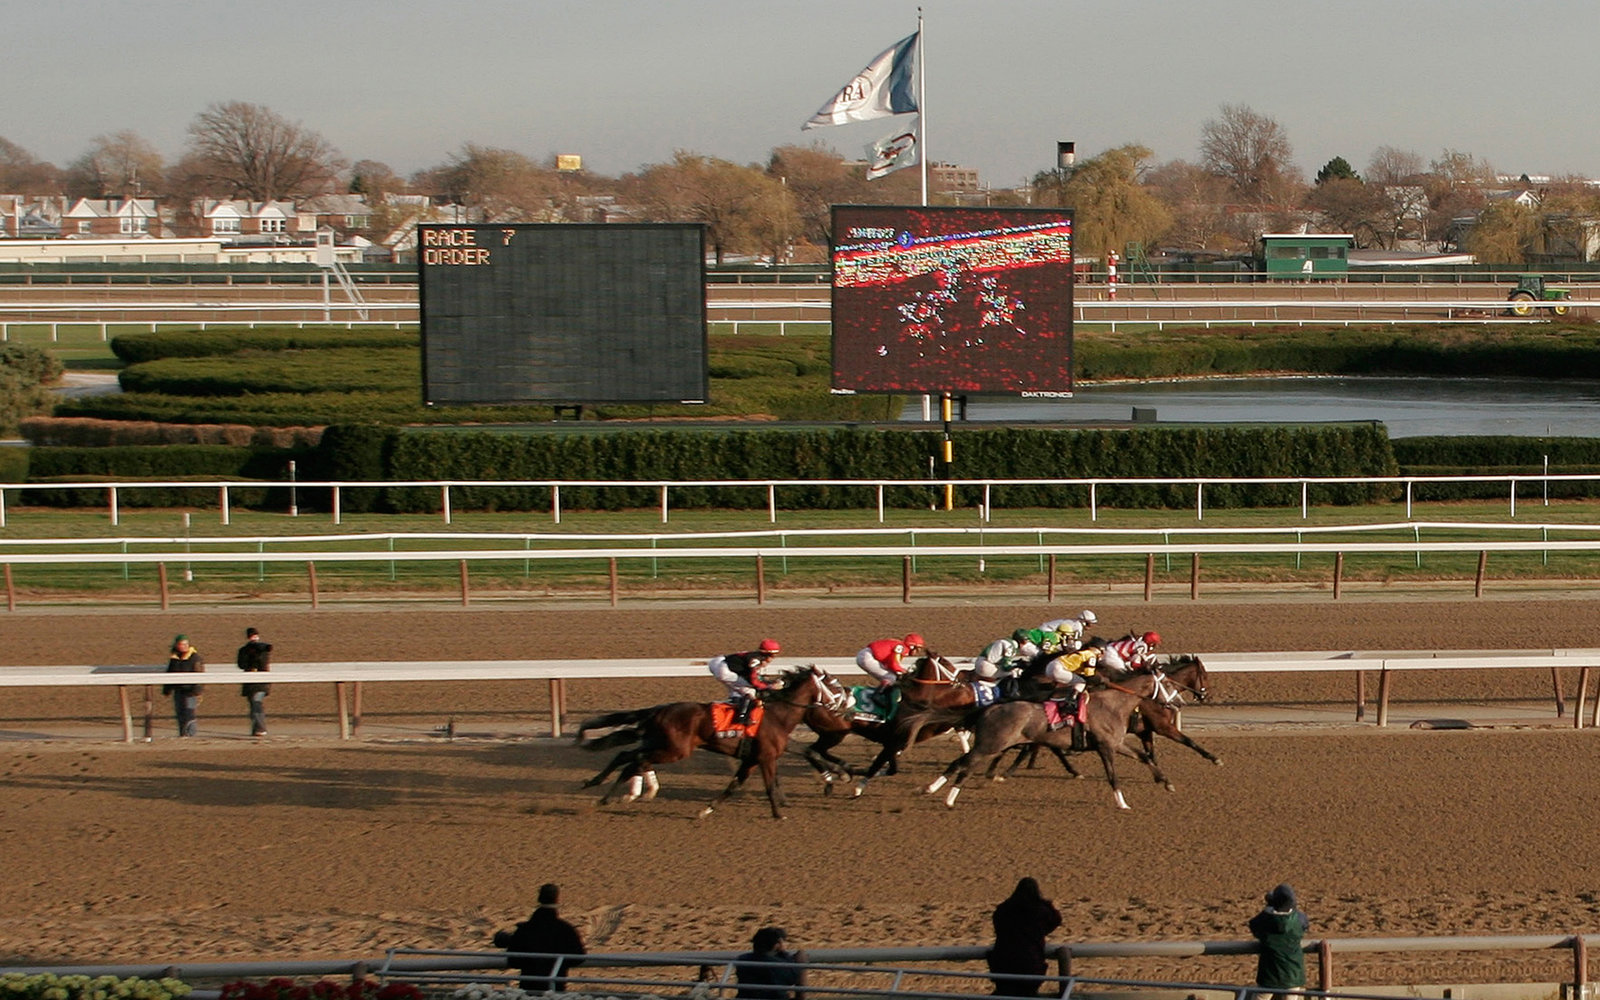 UNITED STATES - NOVEMBER 28:  Horses and jockeys compete at the Aqueduct Racetrack in the Queens borough of New York on Saturday, November 26, 2005.  (Photo by Andrew Harrer/Bloomberg via Getty Images)